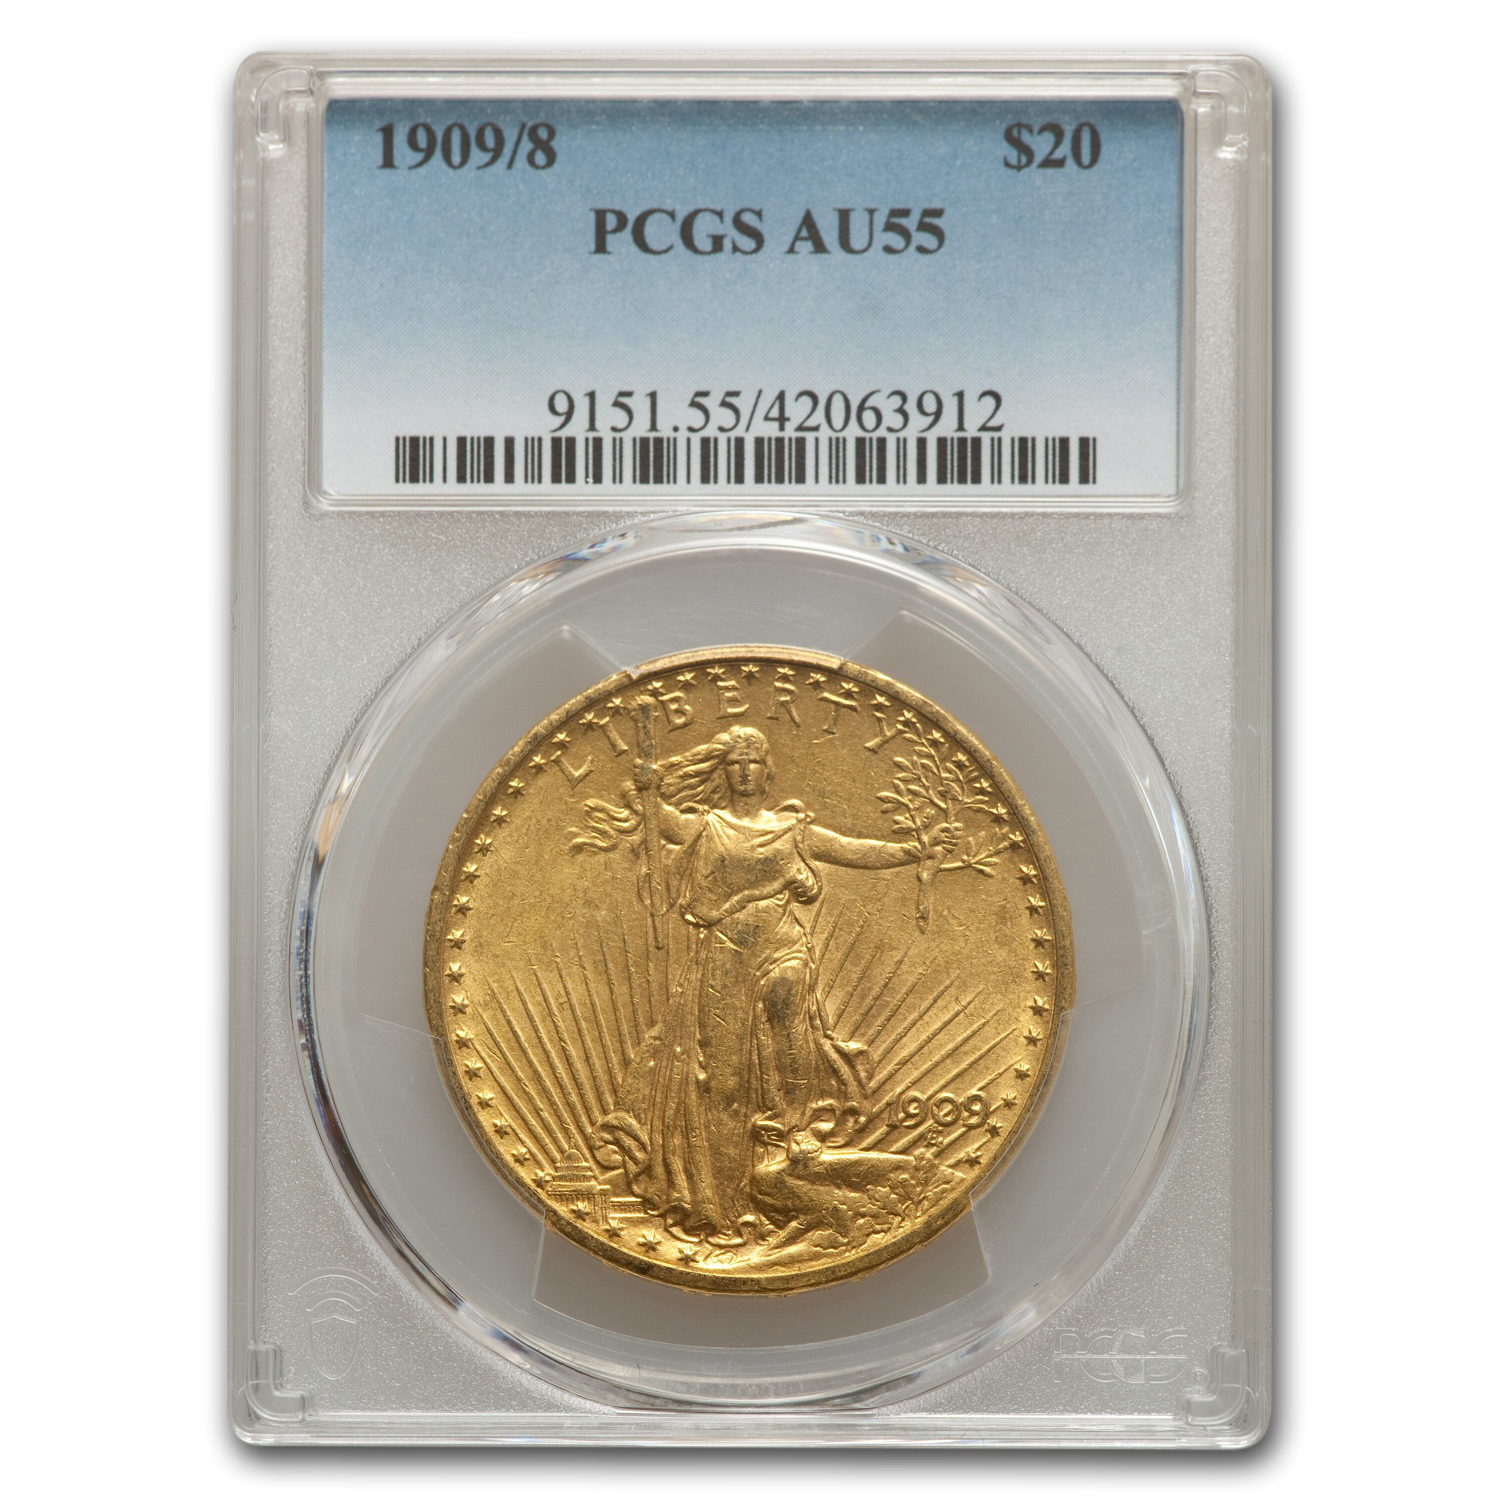 1909/8 $20 Saint-Gaudens Gold Double Eagle AU-55 PCGS